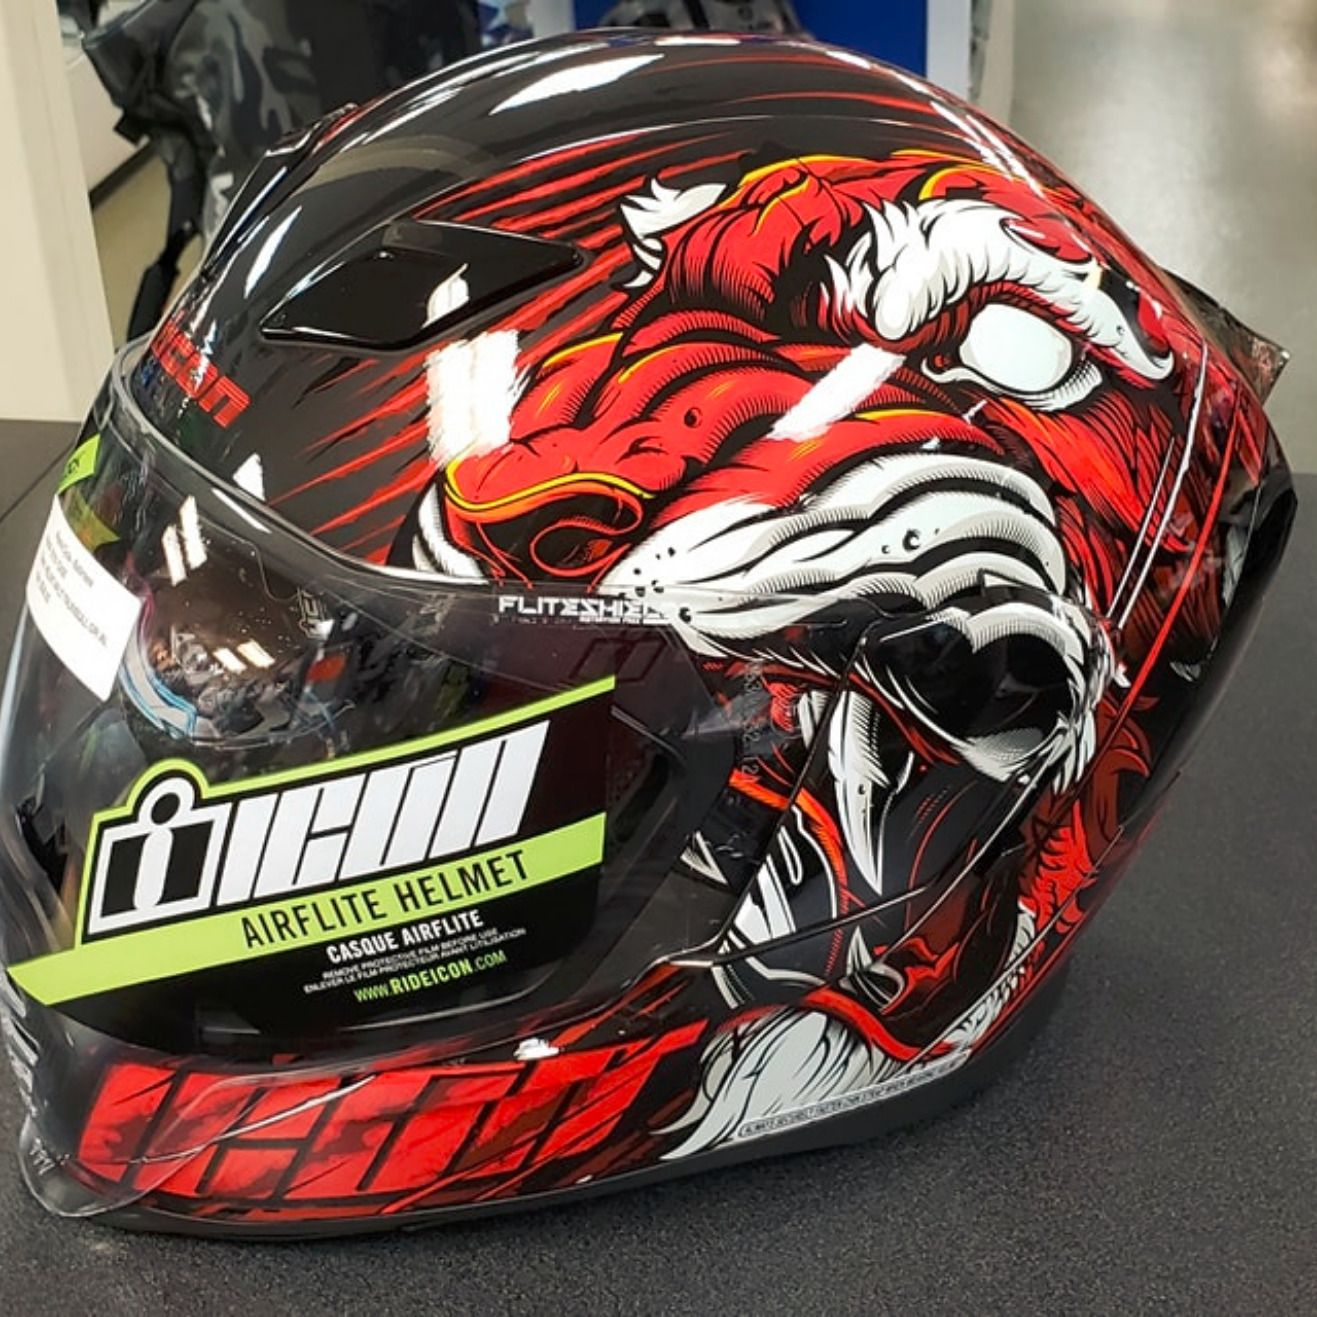 Check out the latest Icon helmets that have just arrived